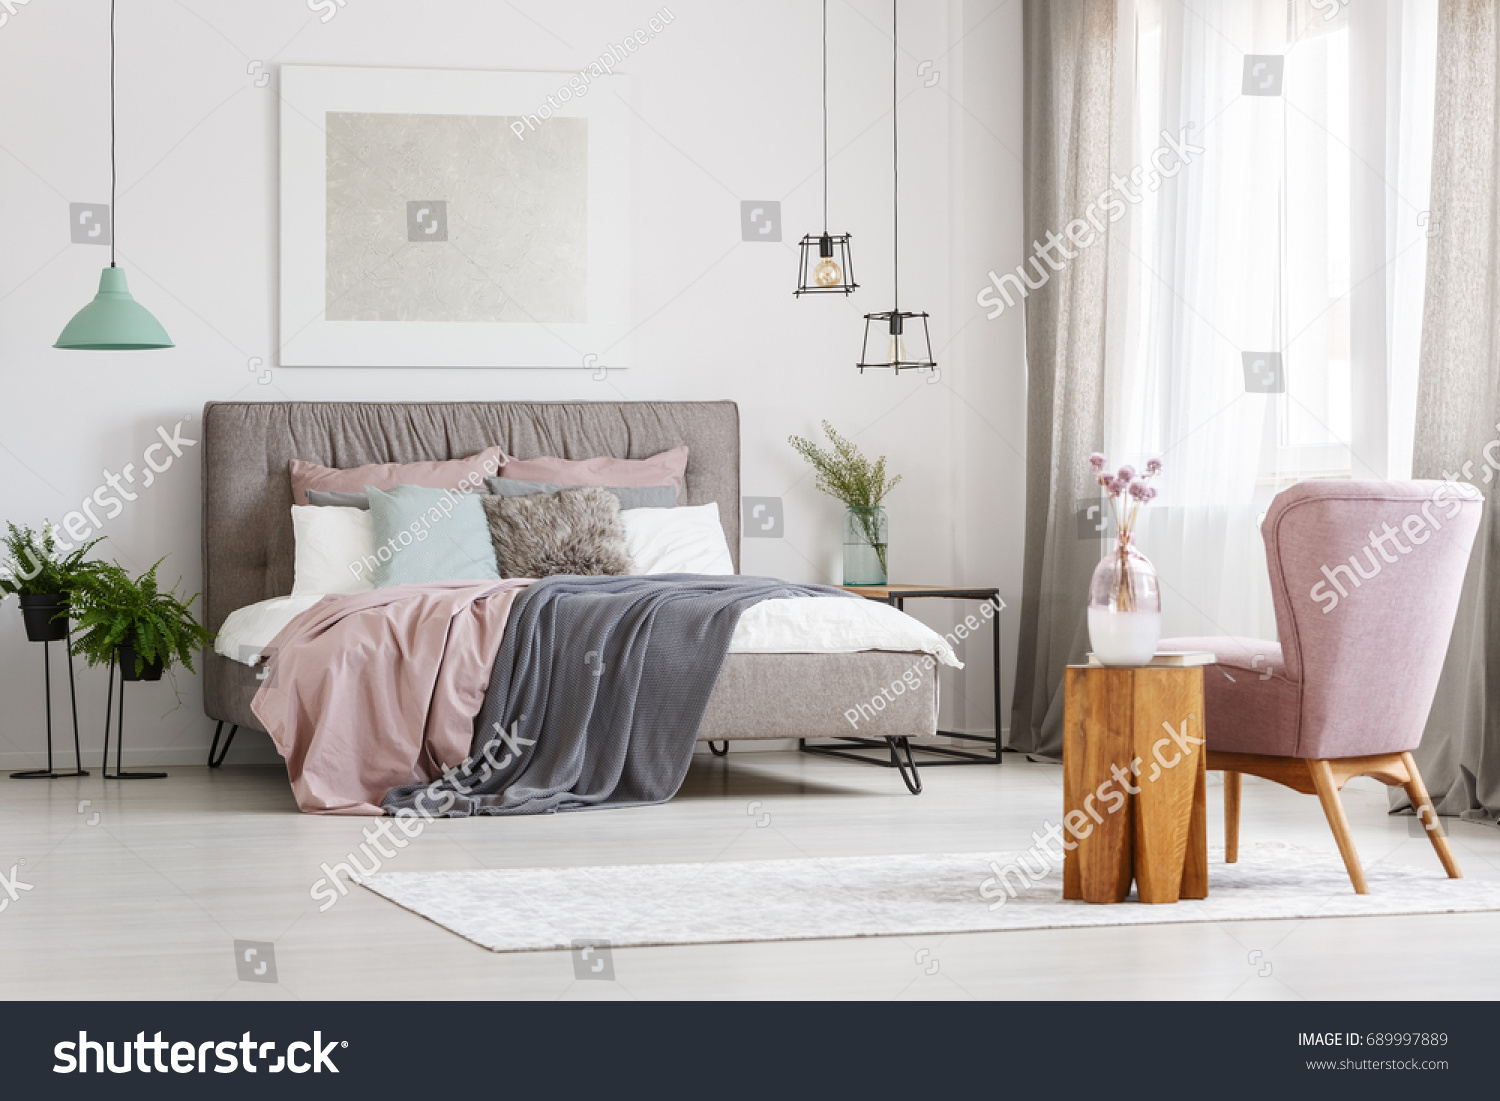 Modern Poster Hanging Above Big Messy Stock Photo (Royalty Free ...